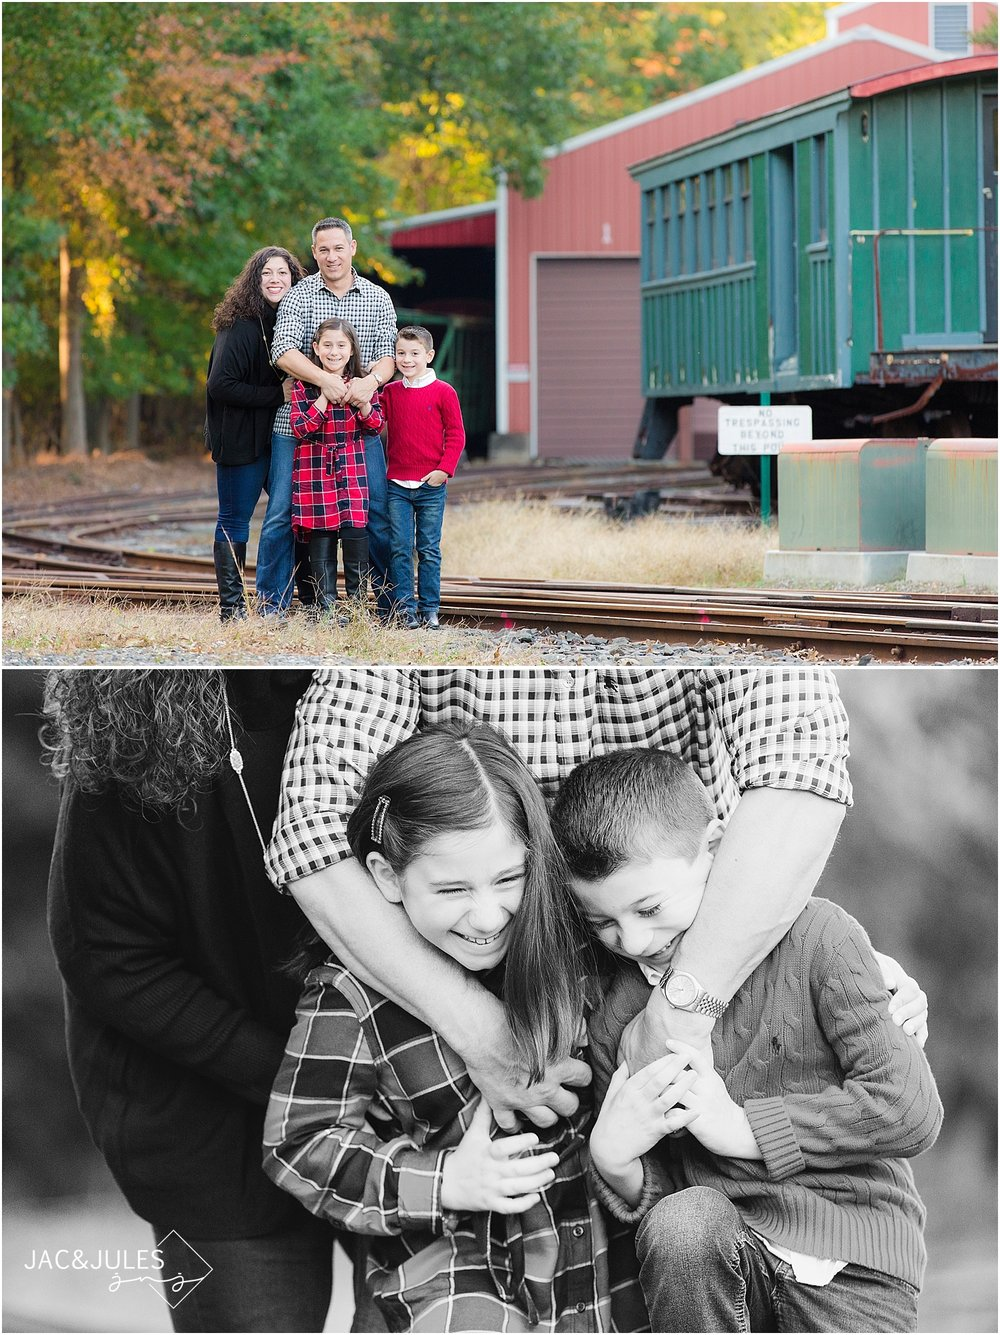 jacnjules photographs family at Allaire State Park for Christmas